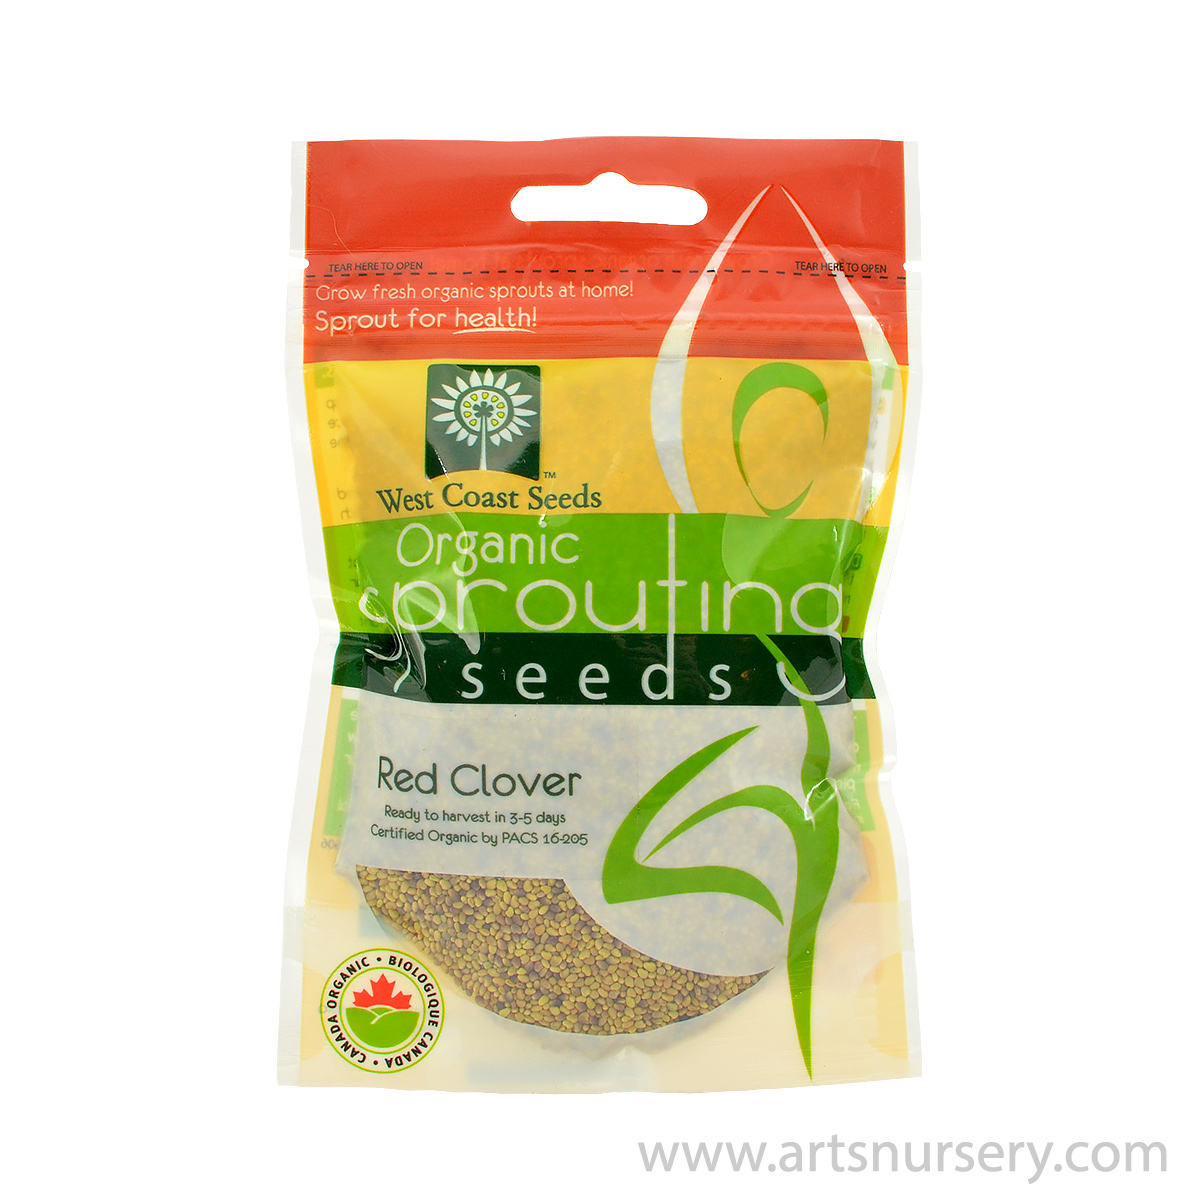 Red Clover Organic Sprouting Seeds